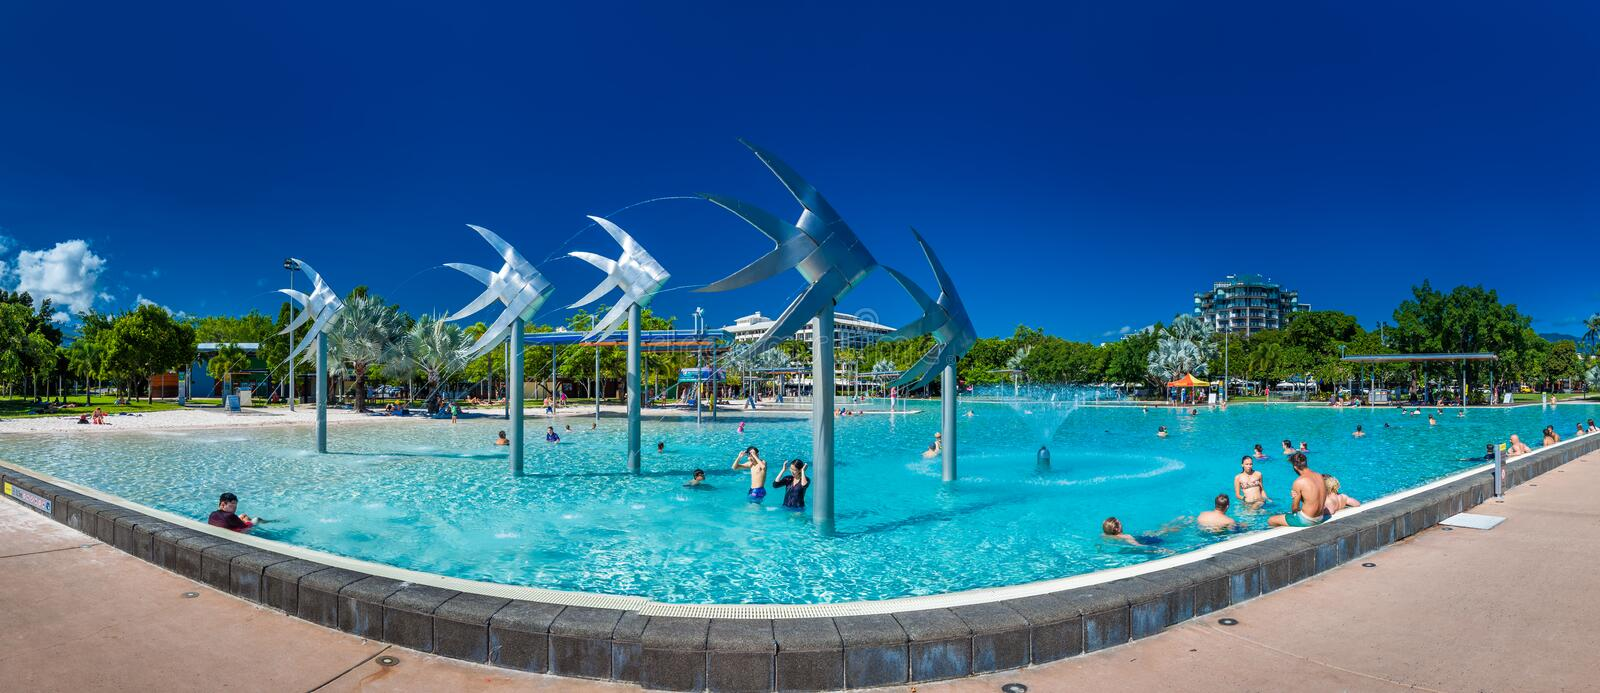 CAIRNS, AUSTRALIA - 27 MARCH 2016. Tropical swimming lagoon on t. He Esplanade in Cairns with artificial beach, Queensland, Australia stock photography